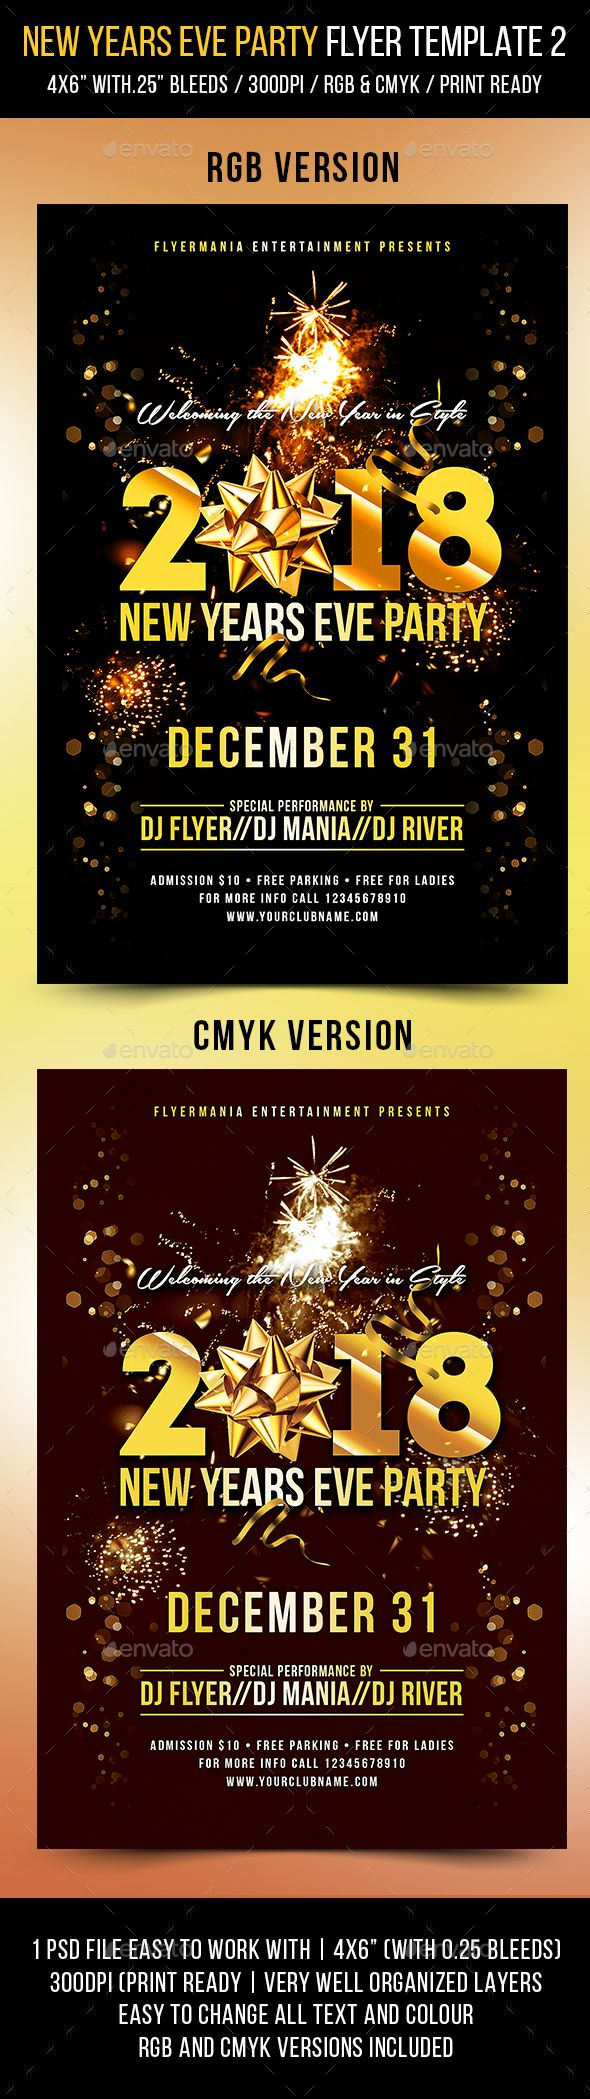 #New Years Eve #Party #Flyer Template 2 - Events #Flyers